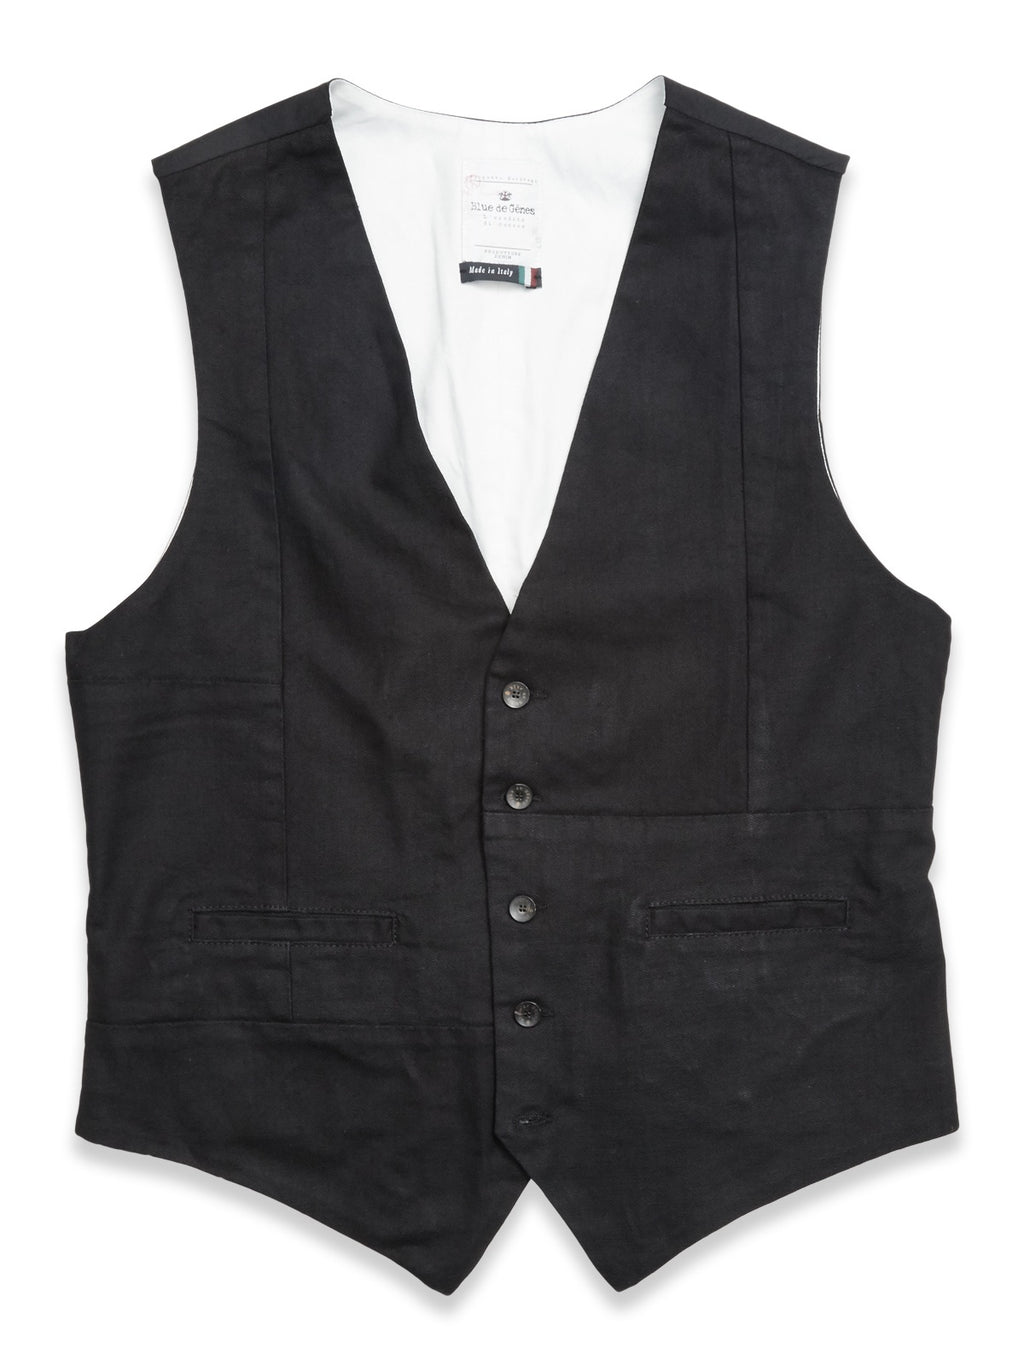 Blue de Genes Black Denim Waistcoat - LAST SIZES!